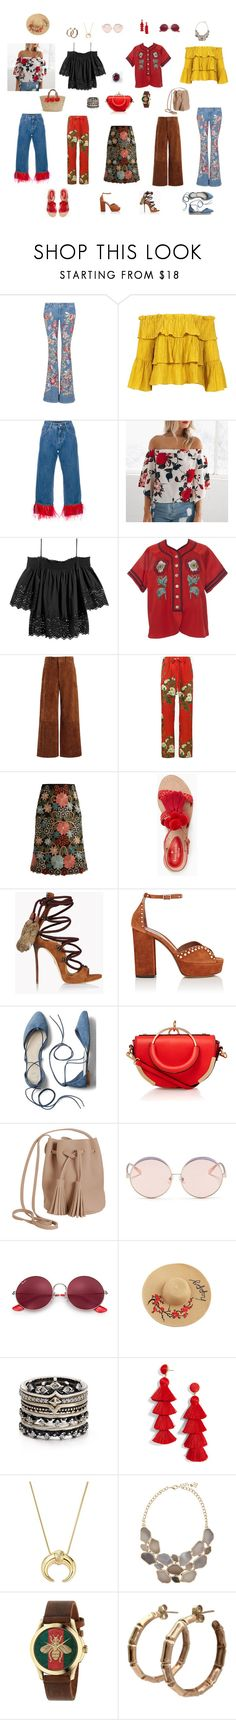 """BOHO"" by akmaral-mail on Polyvore featuring мода, Alice + Olivia, Sans Souci, Dolce&Gabbana, Gucci, Joseph, RED Valentino, Kate Spade, Dsquared2 и Tabitha Simmons"